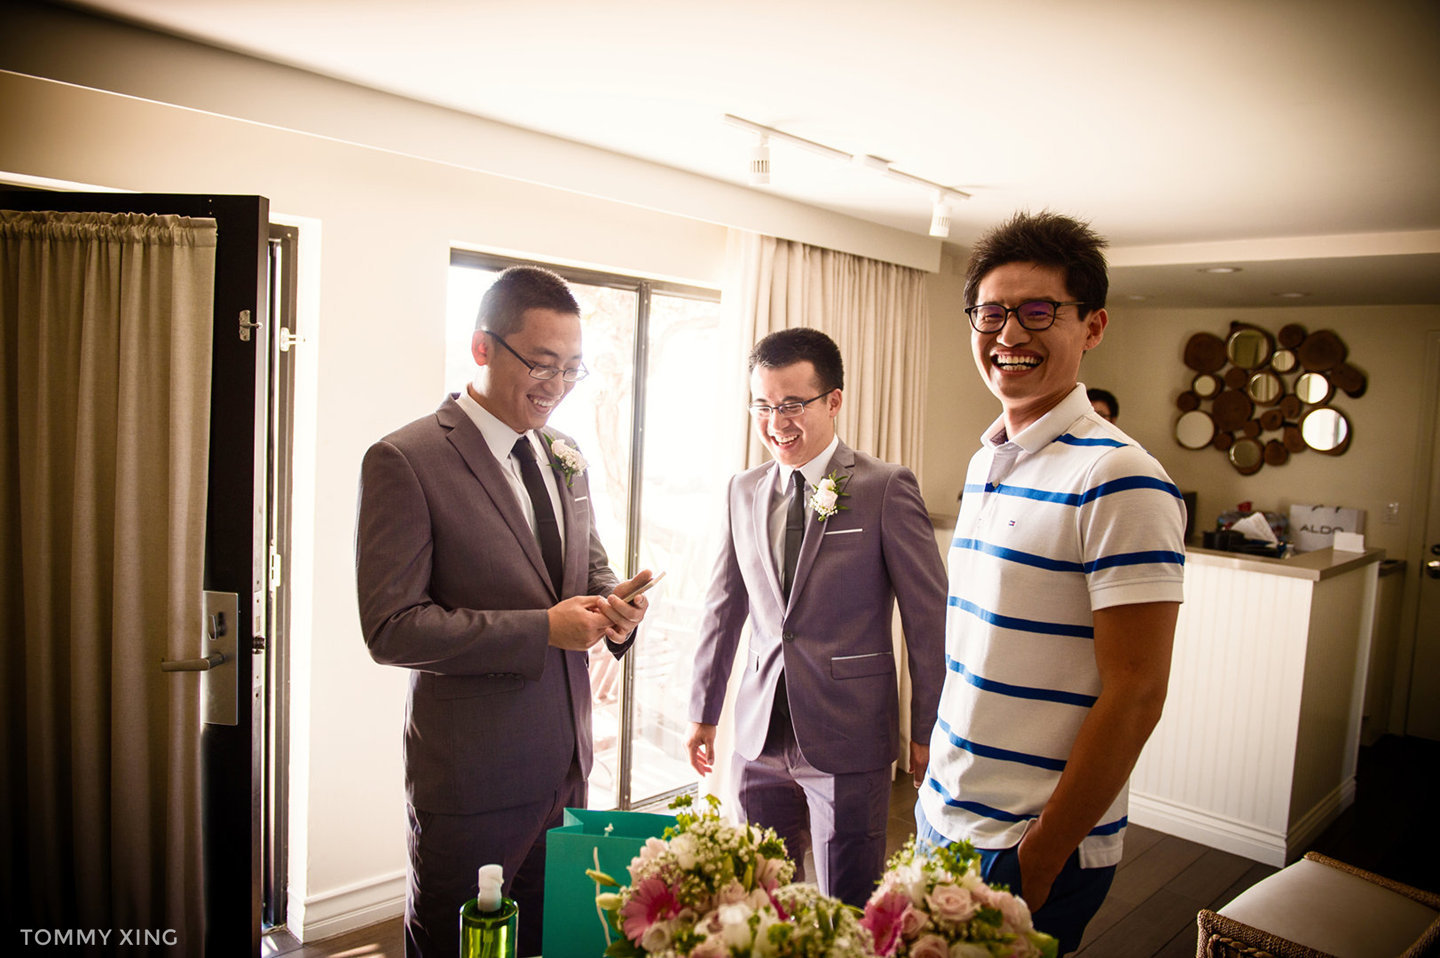 Paradise Point Resort Wedding Xiaolu & Bin San Diego 圣地亚哥婚礼摄影跟拍 Tommy Xing Photography 洛杉矶婚礼婚纱照摄影师 026.jpg